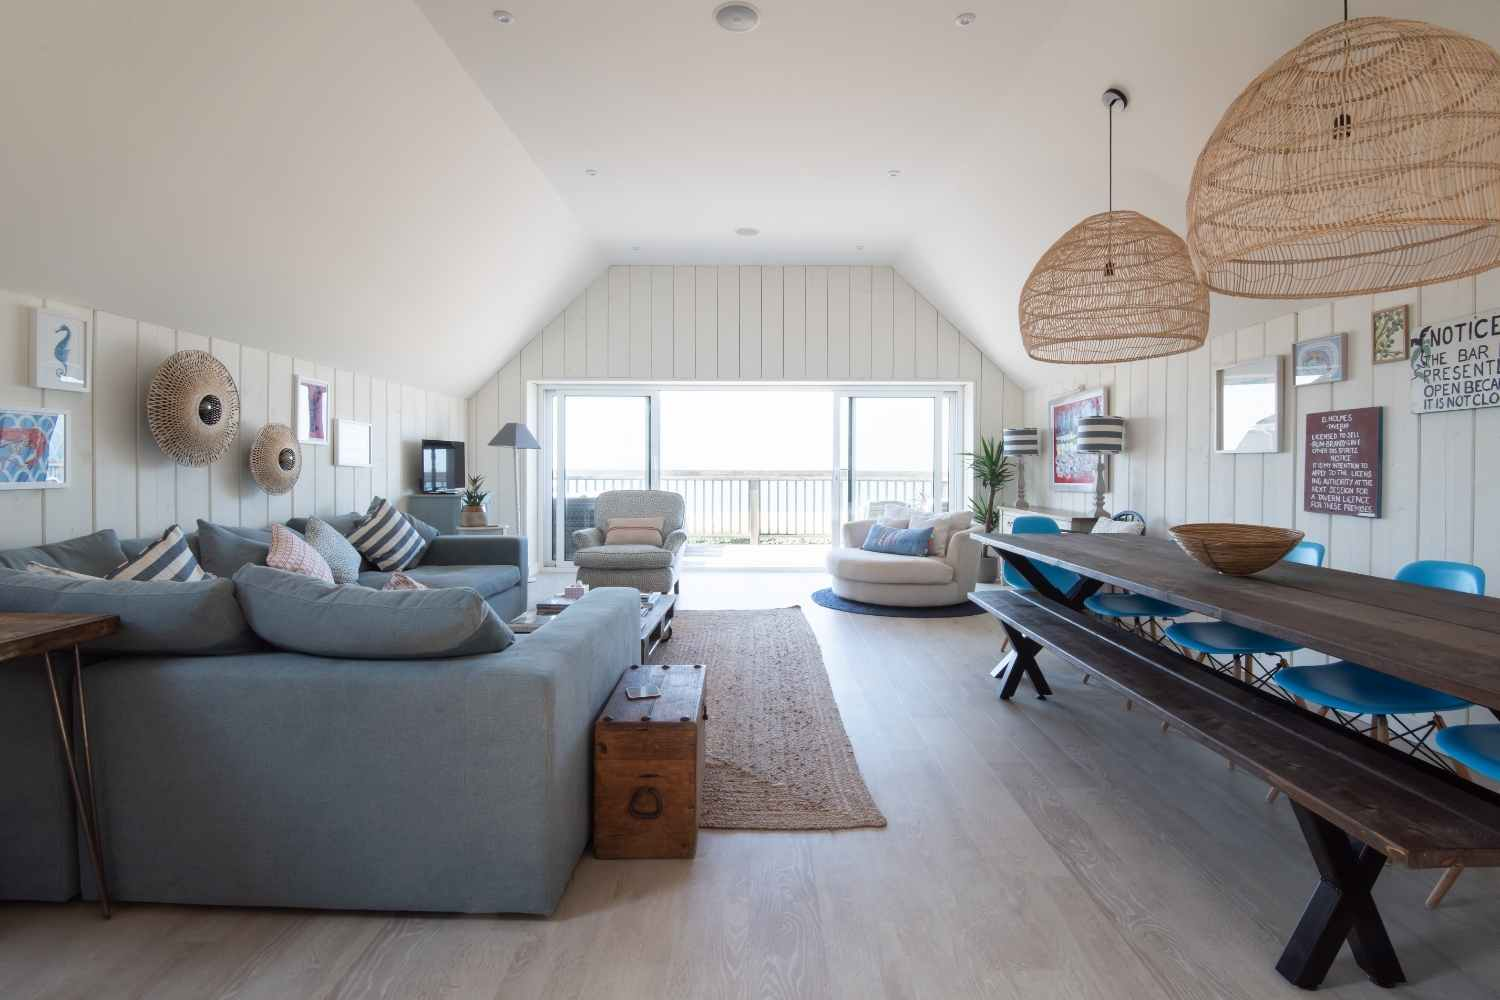 An open plan living space with views over the beach and sea